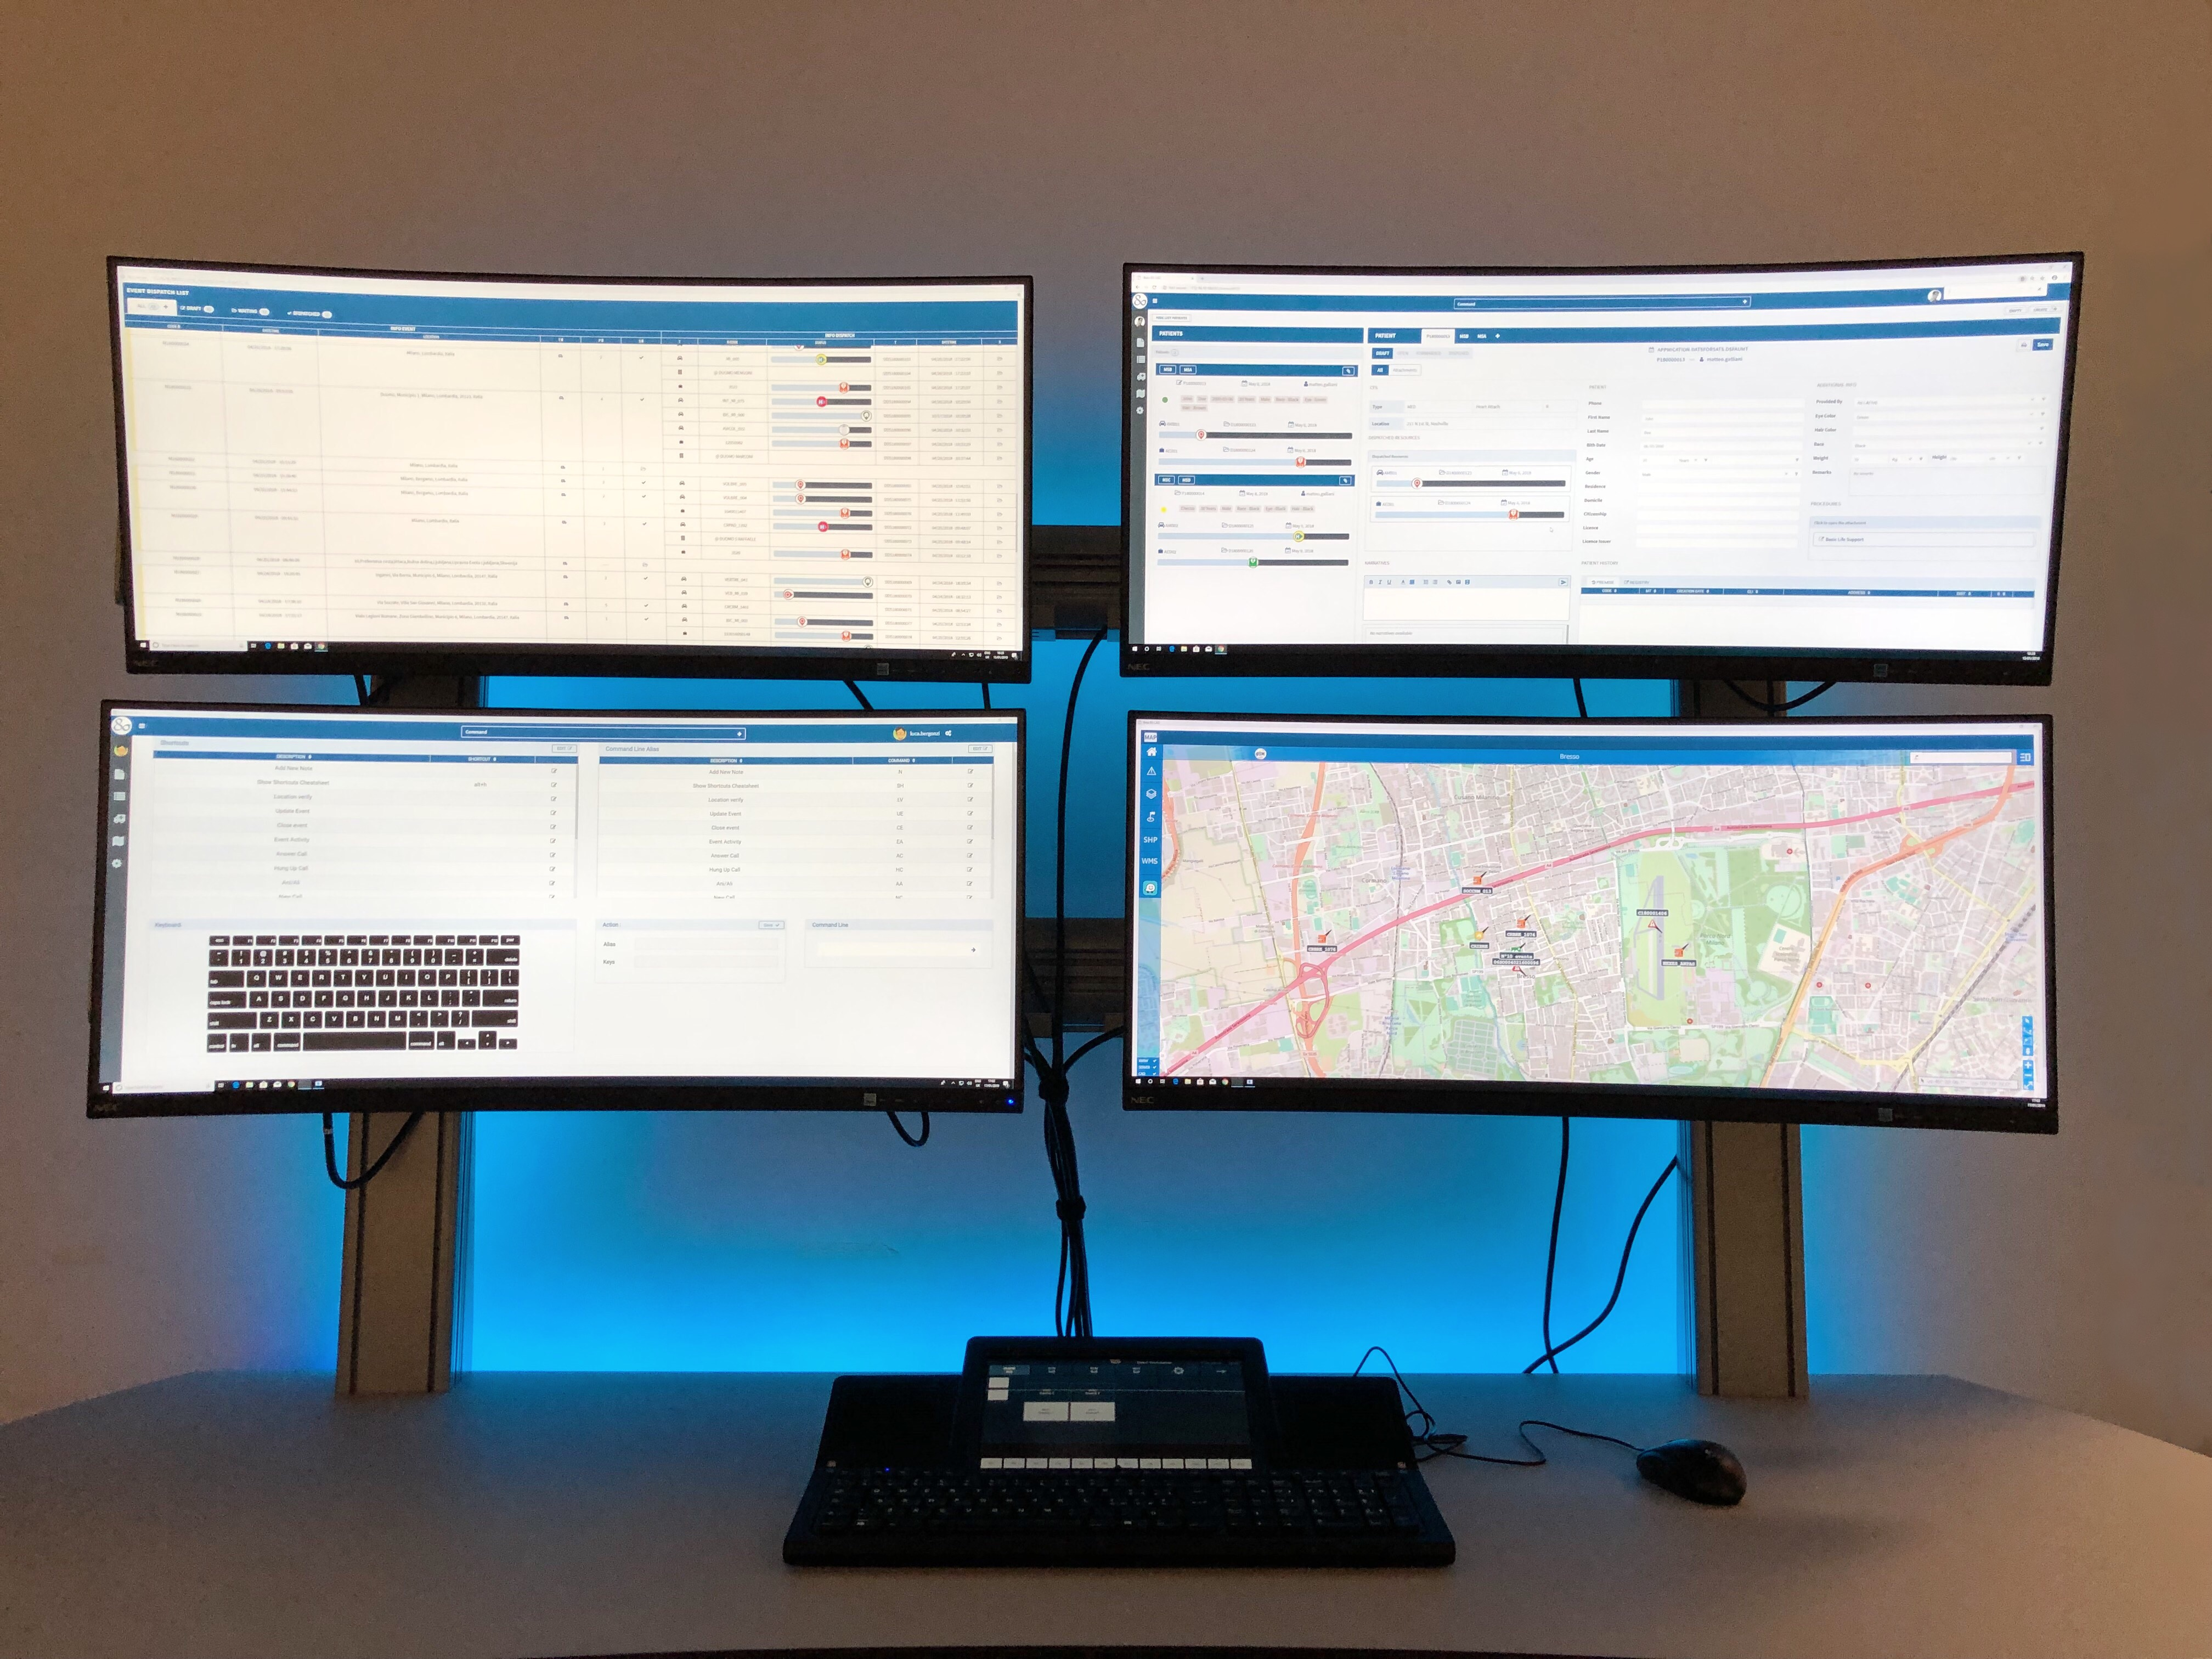 Beta 80 Group Demo center emergency management solutions